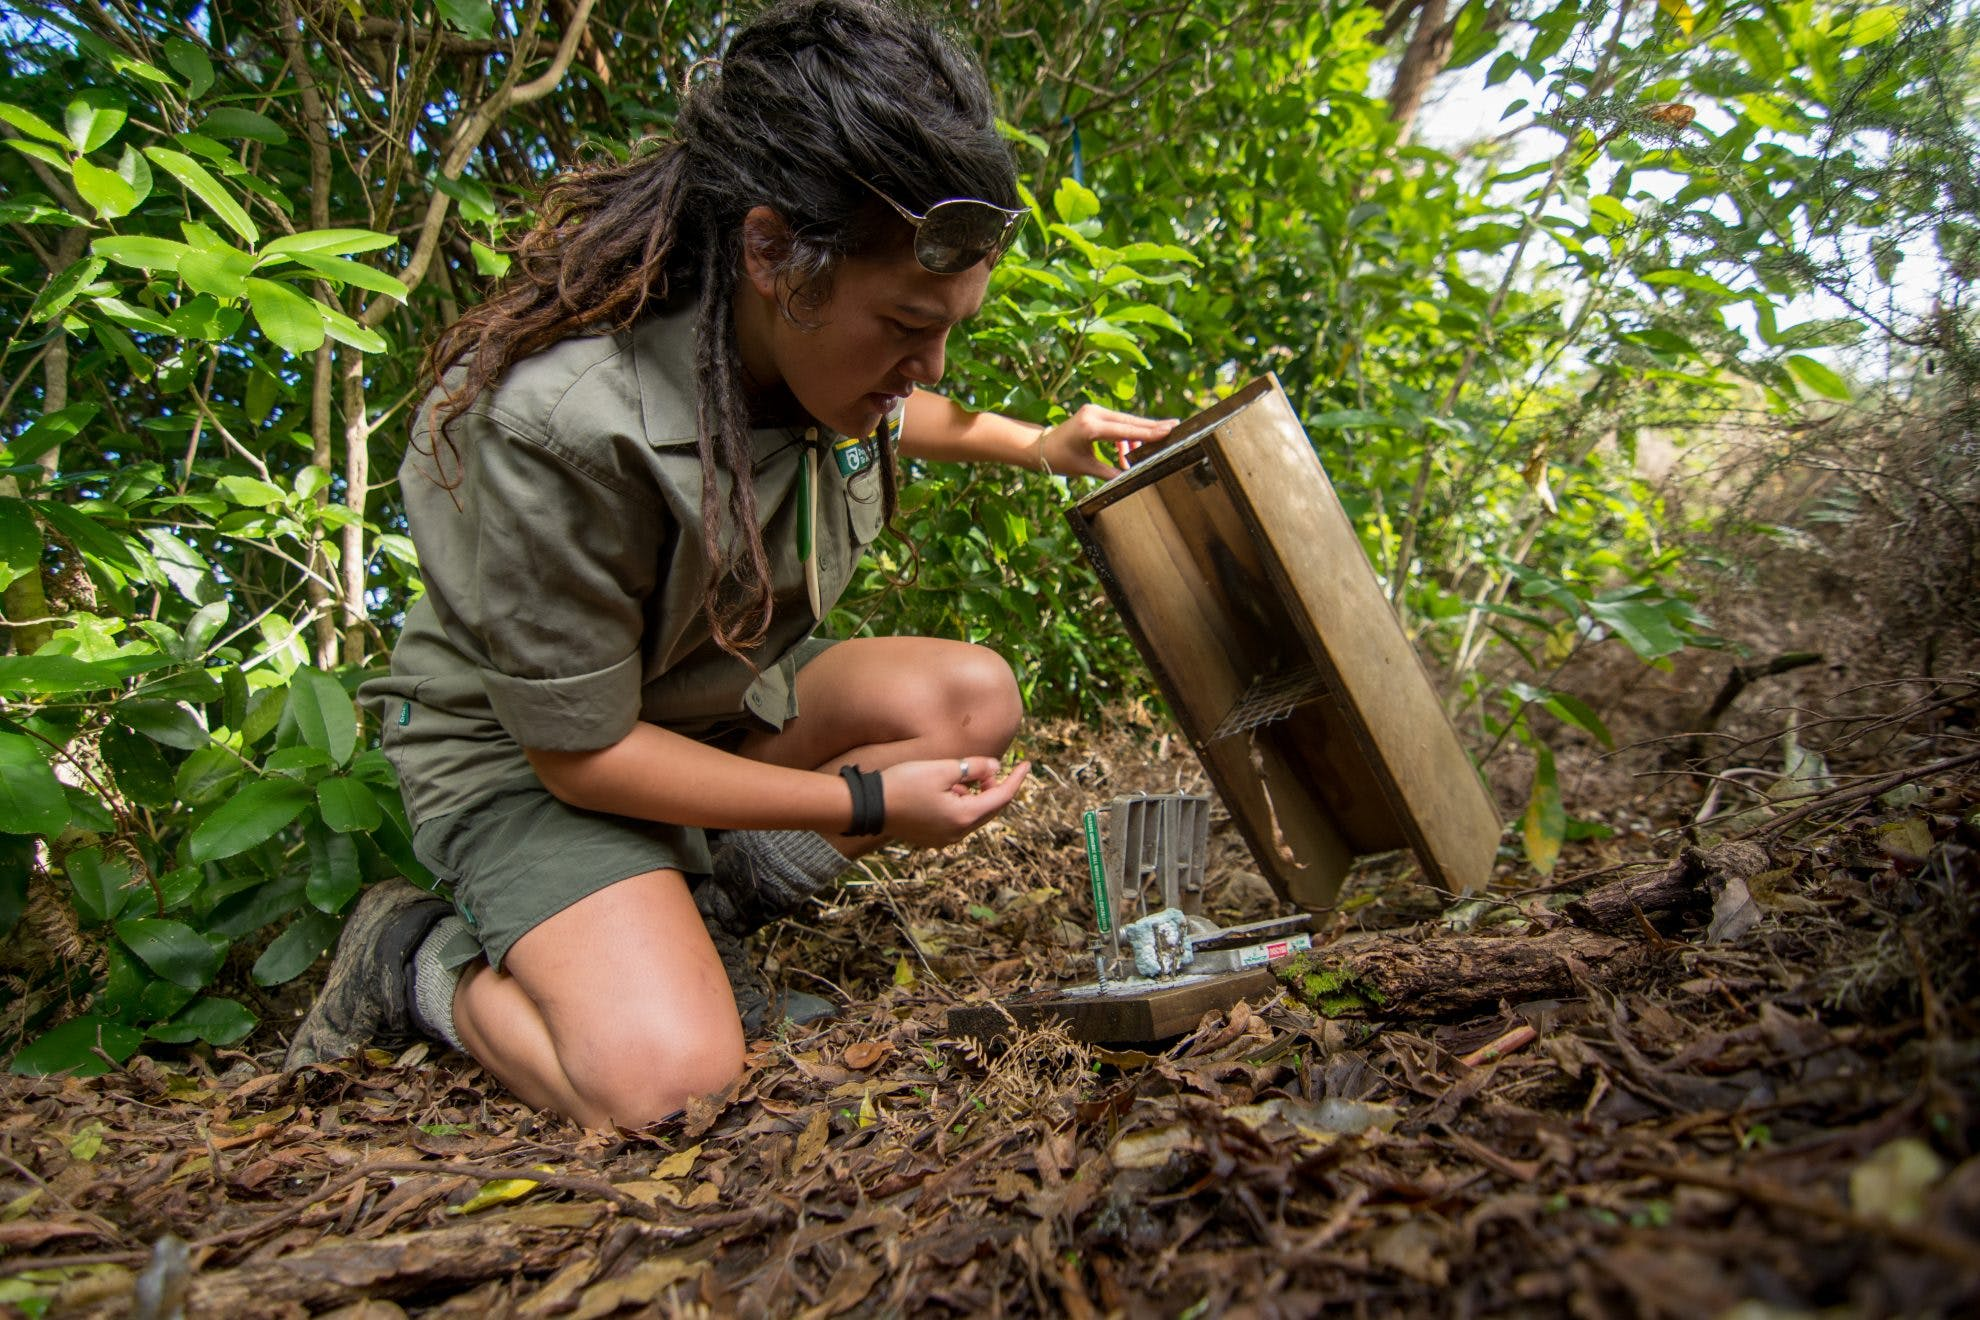 Predator trapping course launched by Minister - Wilderness